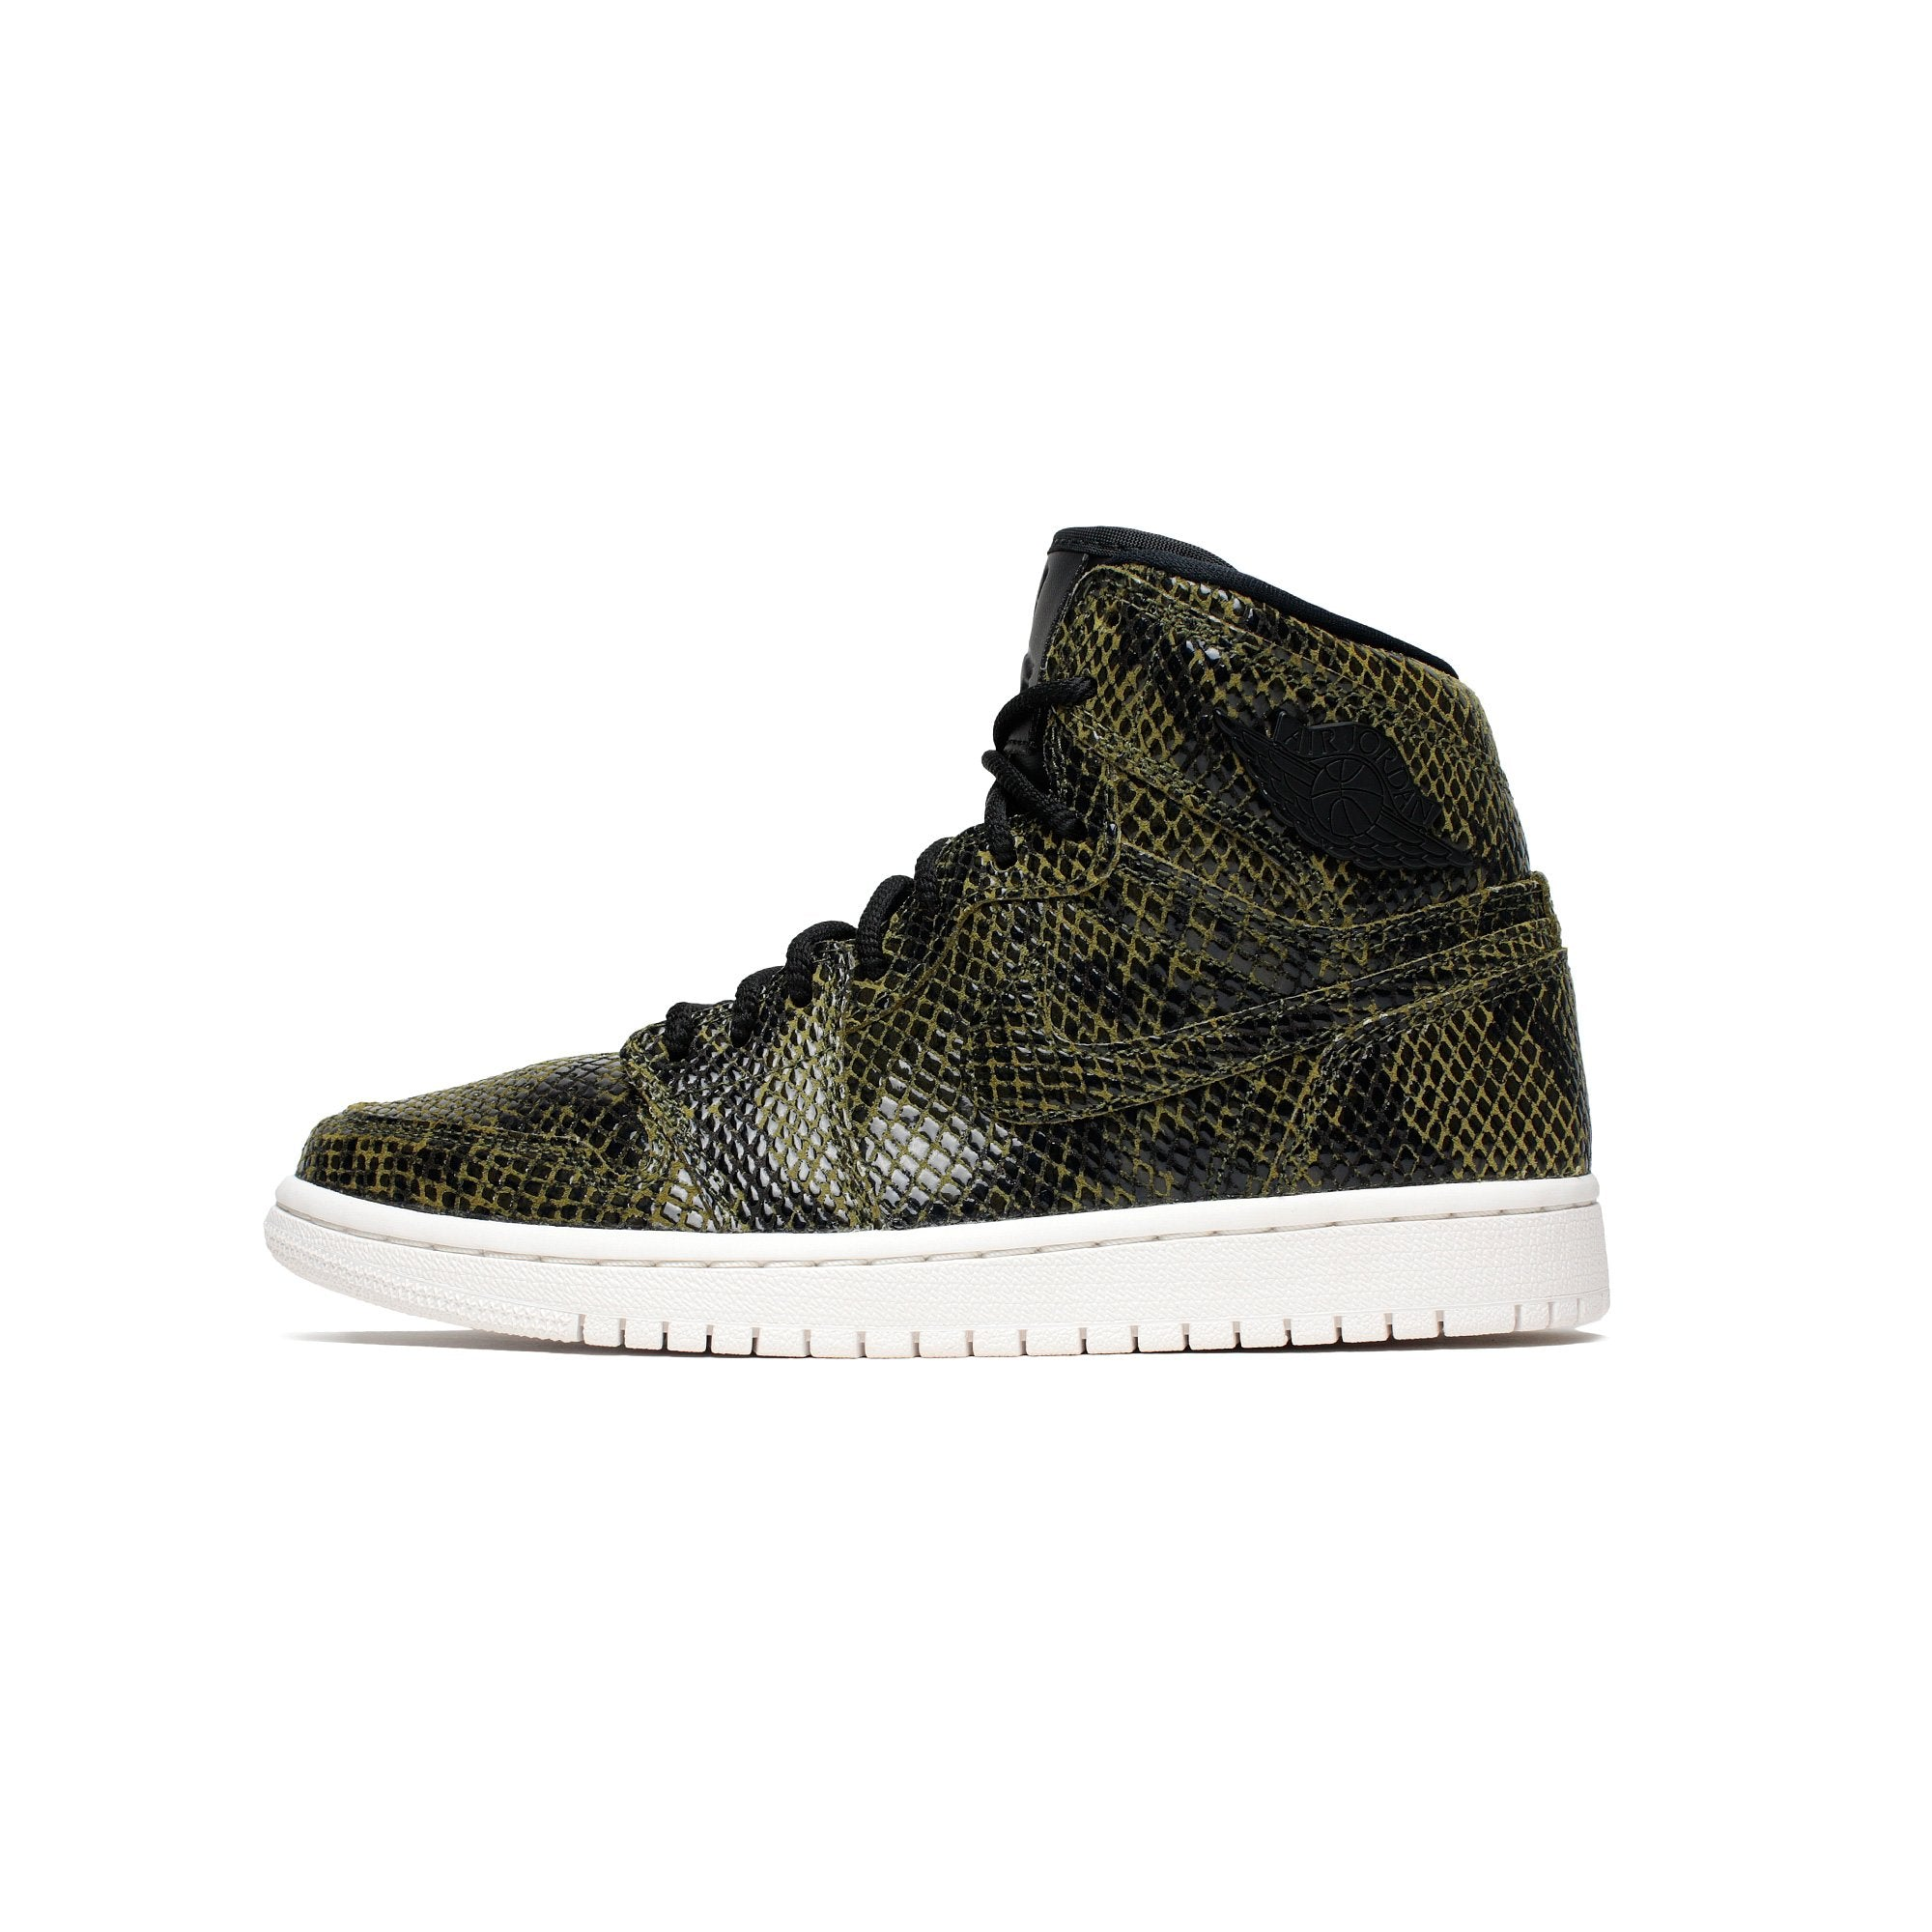 sports shoes 8ca50 f768b Details about Womens Air Jordan 1 Retro High Premium Snakeskin Olive Canvas  Black AH7389-302